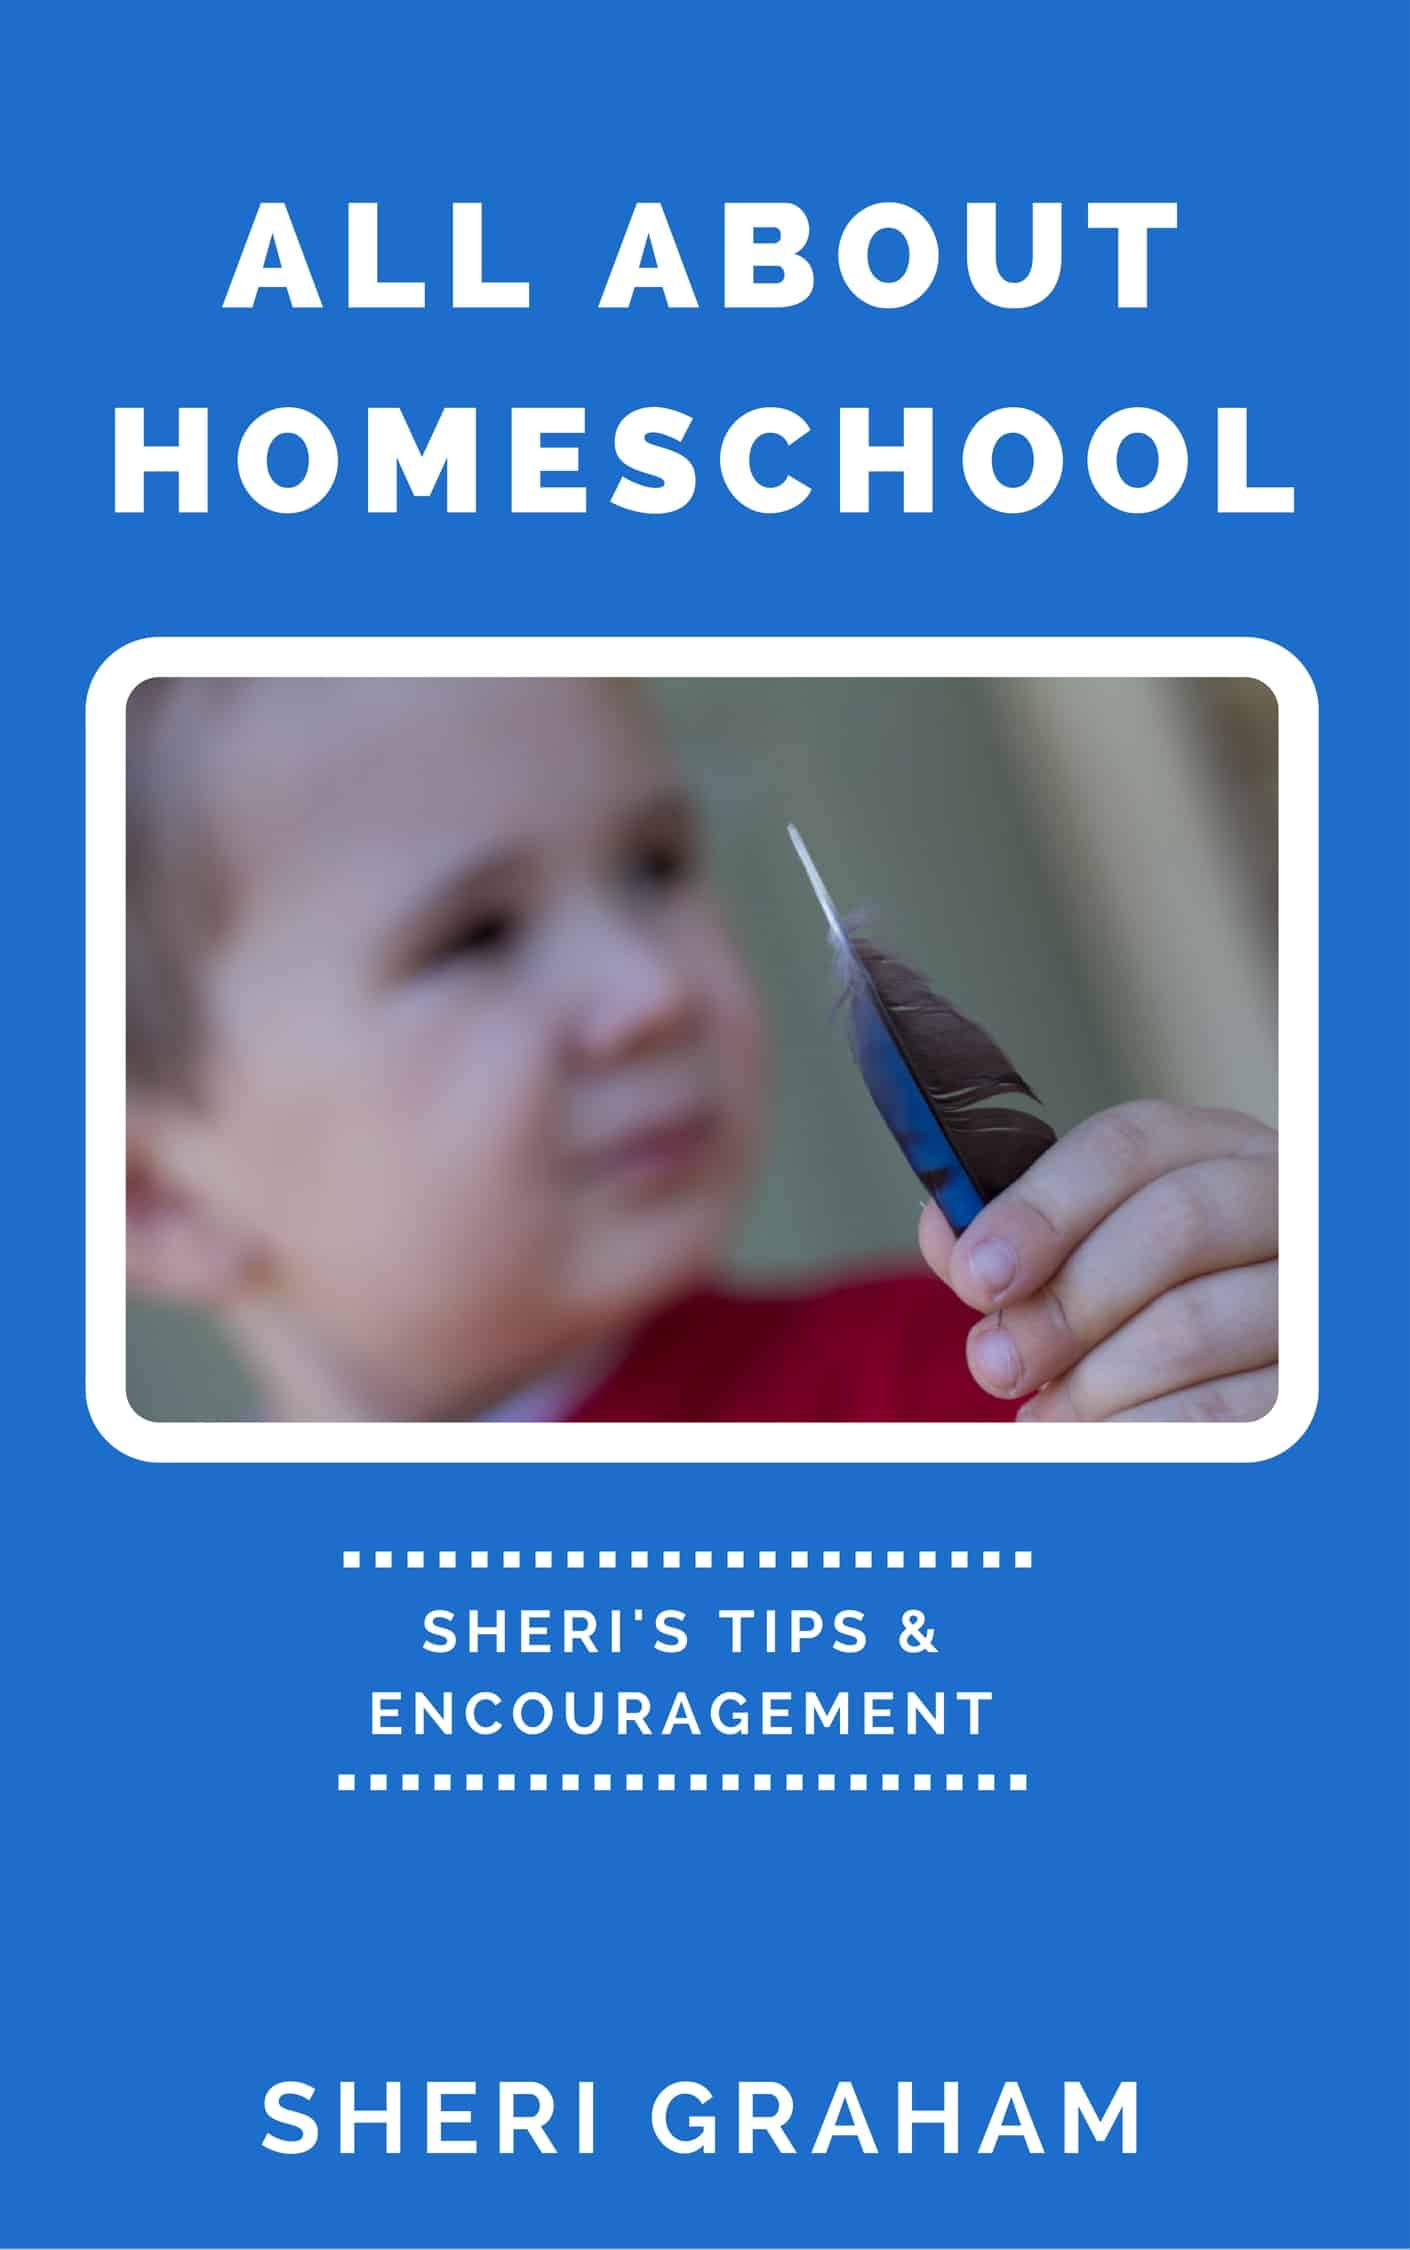 All About Homeschool (eBook)